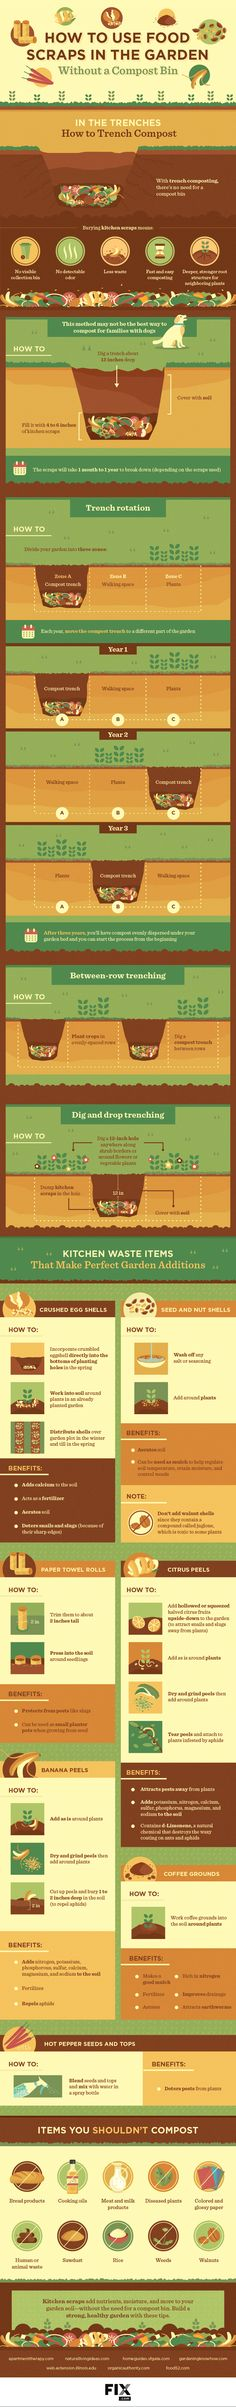 Trench composting is a great alternative for people who don't want to have a large bin in their backyard. This infographic will show you how trench composting your food scraps will help your garden flourish.